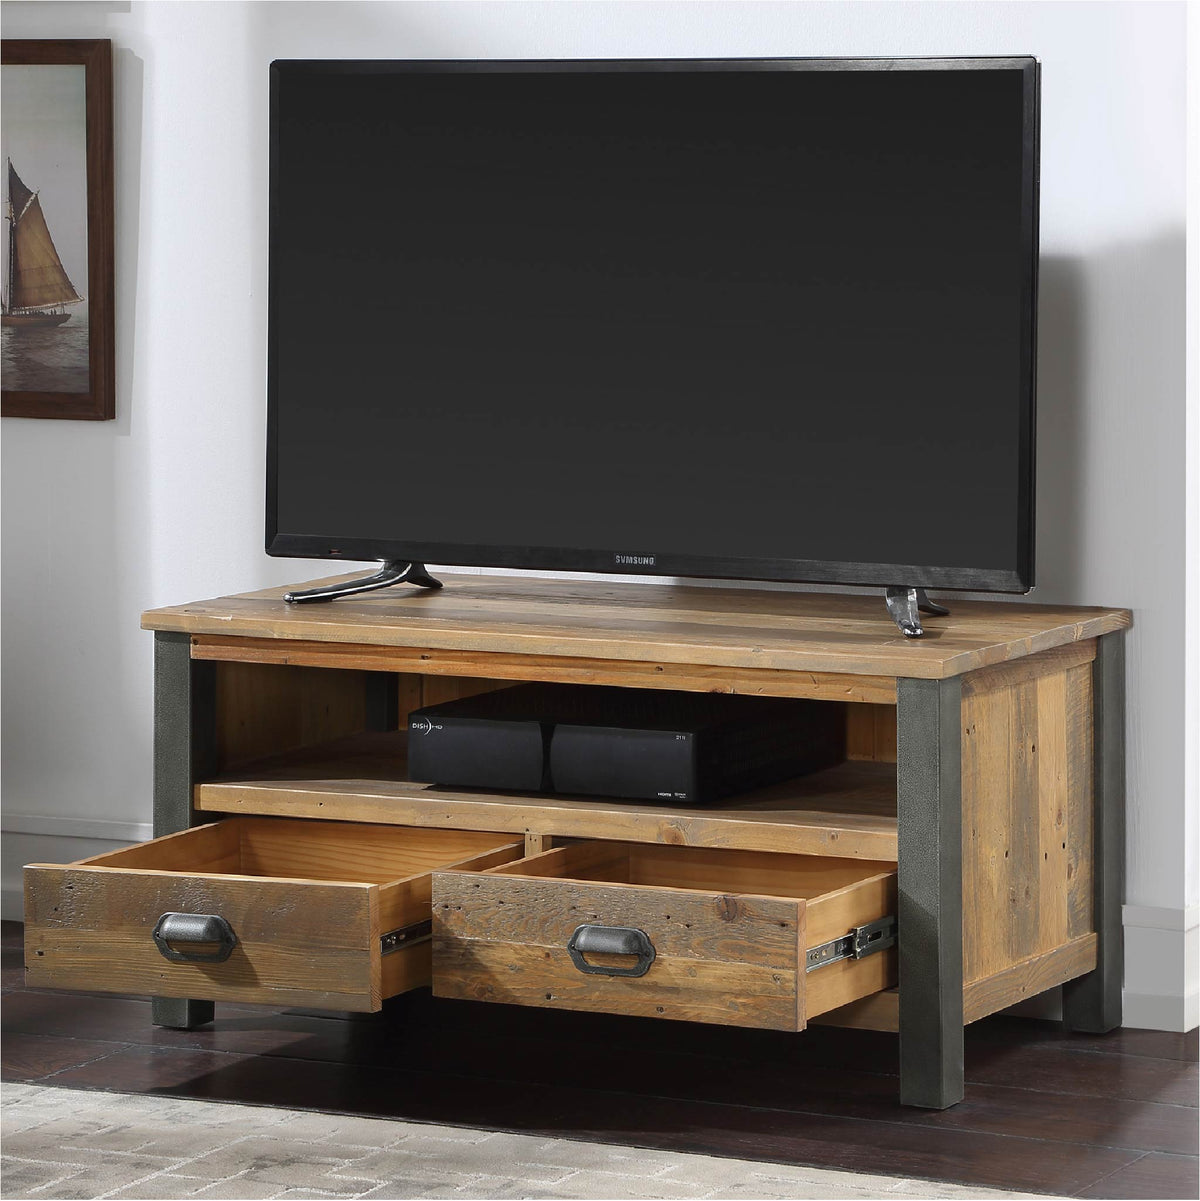 Open drawer view of Urban Elegance Industrial Reclaimed Wood TV Stand